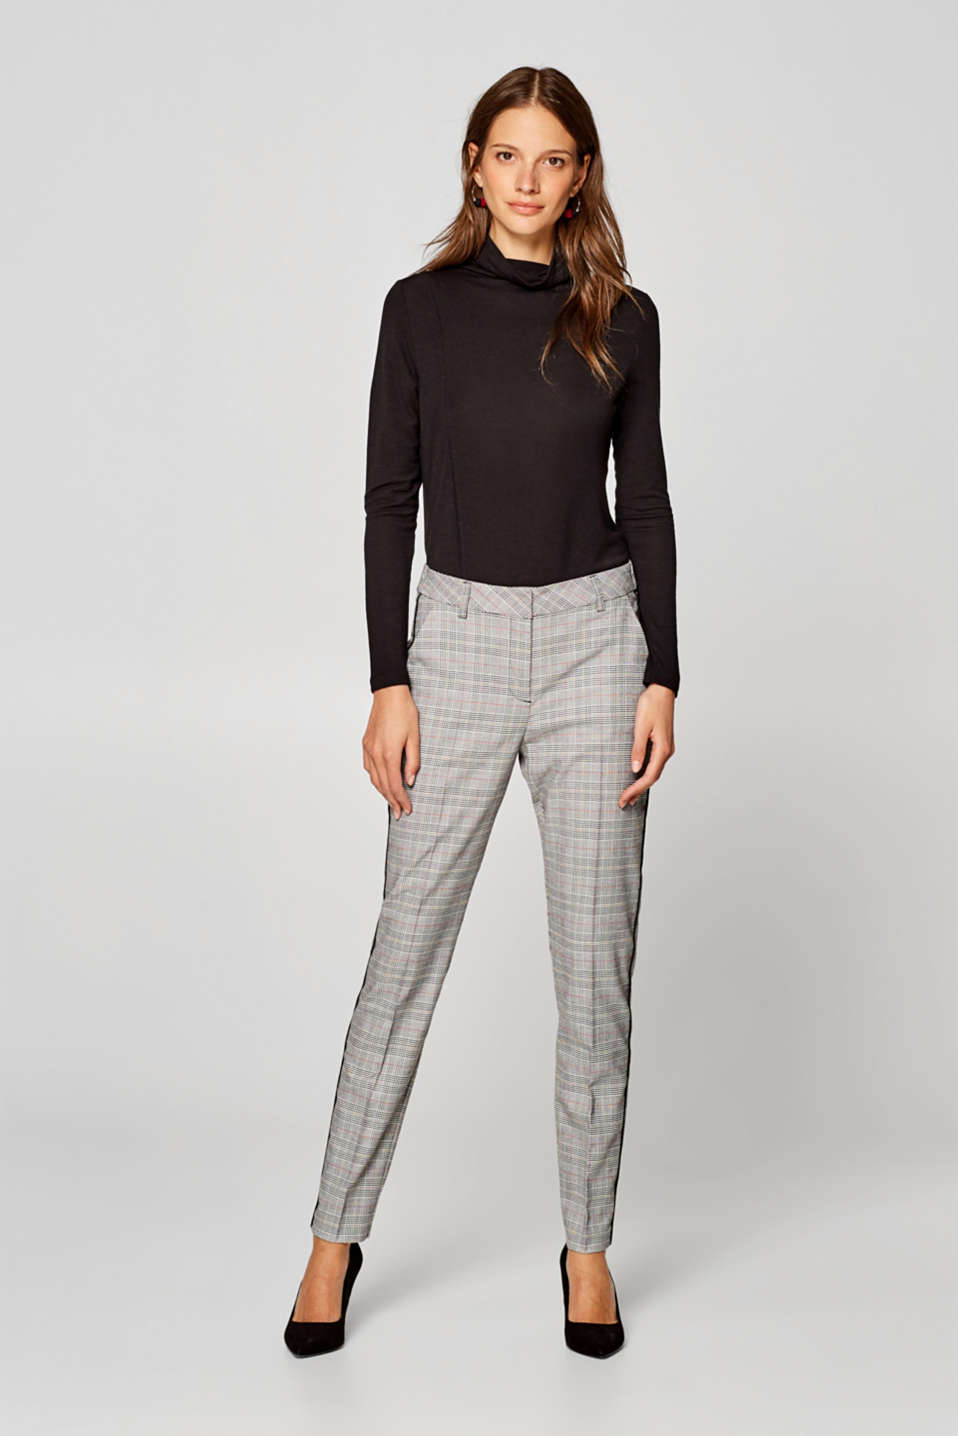 Esprit - Prince of Wales check stretch trousers with piping